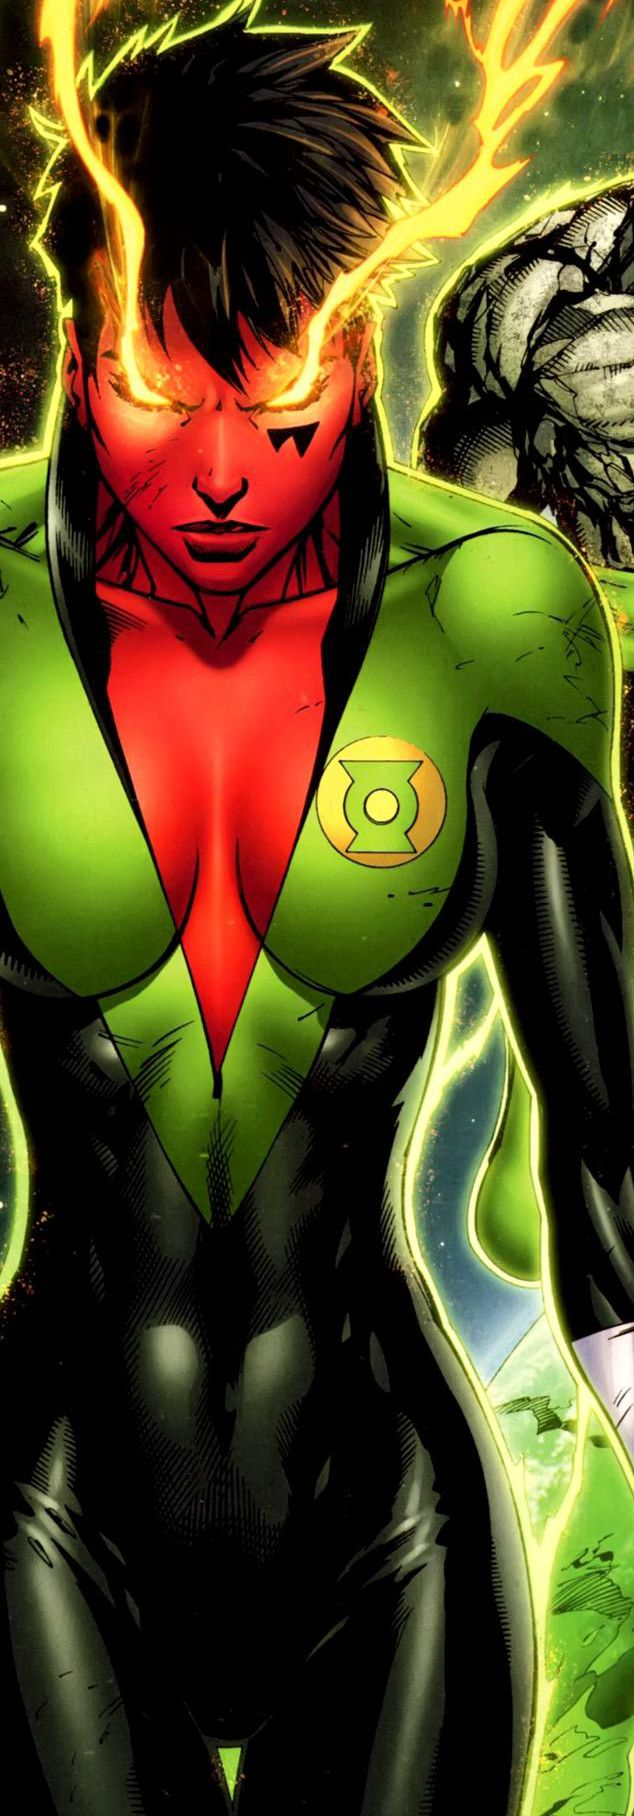 Soranik Natu is generally seen as a combat medic of sorts, stemming from her pre-Green Lantern occupation as a neurosurgeon on the planet Korugar. While she is a decorated hero in her own right, Natu is perhaps still best known as the daughter of Sinestro & Arin-Sur. Initially reluctant to wear the power of the Green Lantern Ring, Soranik eventually accepts her role as a member of the Corps, & has gone on to become one of its most respected members.